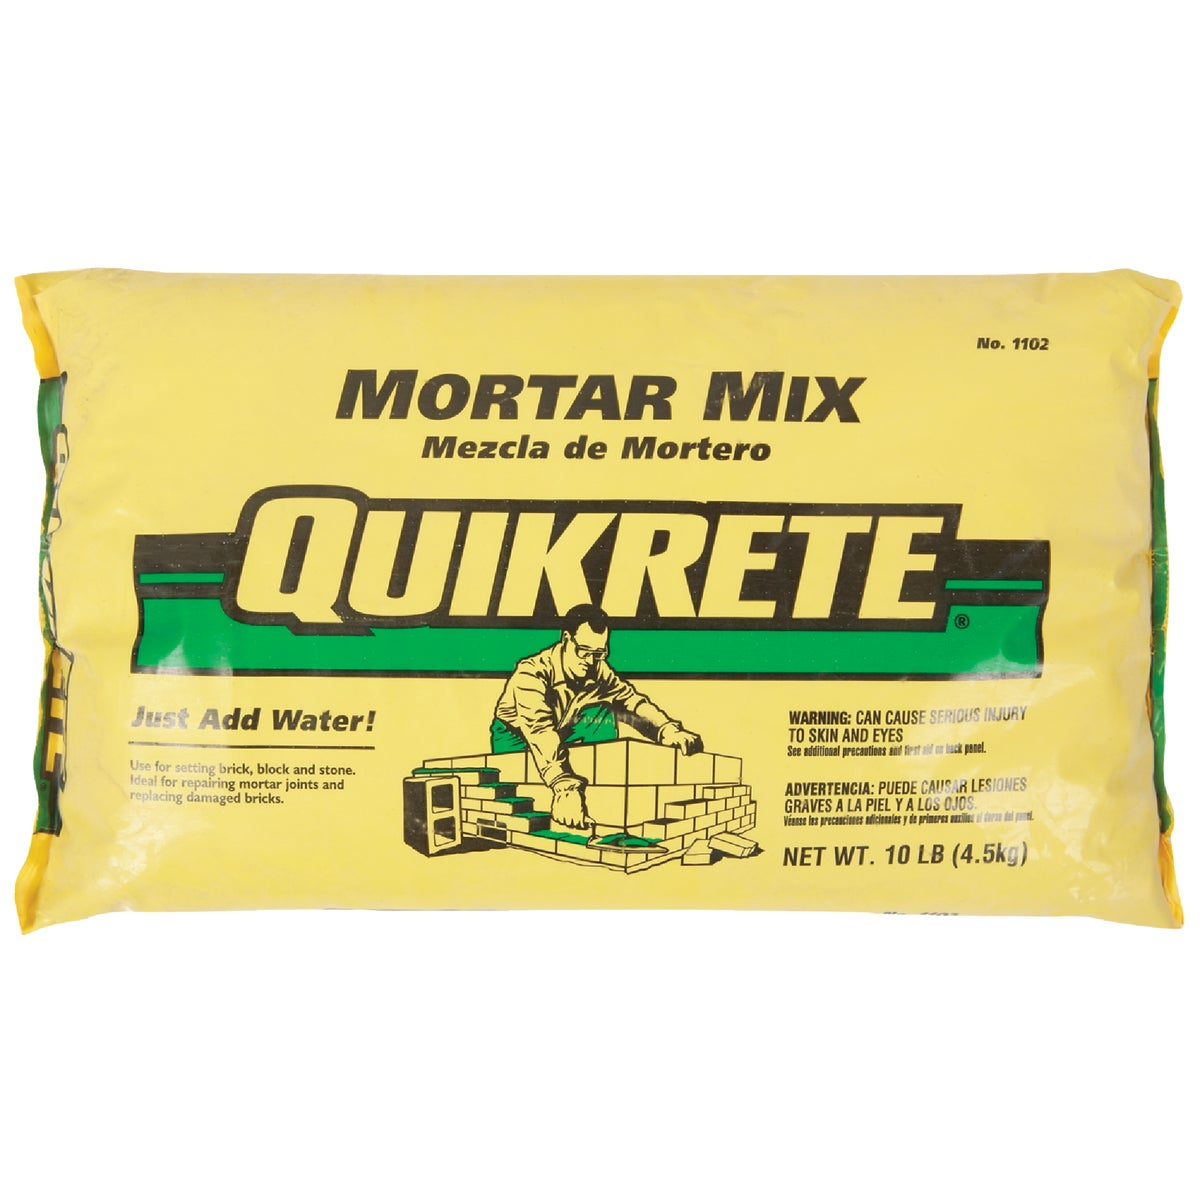 10LB MORTAR MIX - 110210 by Quikrete Co